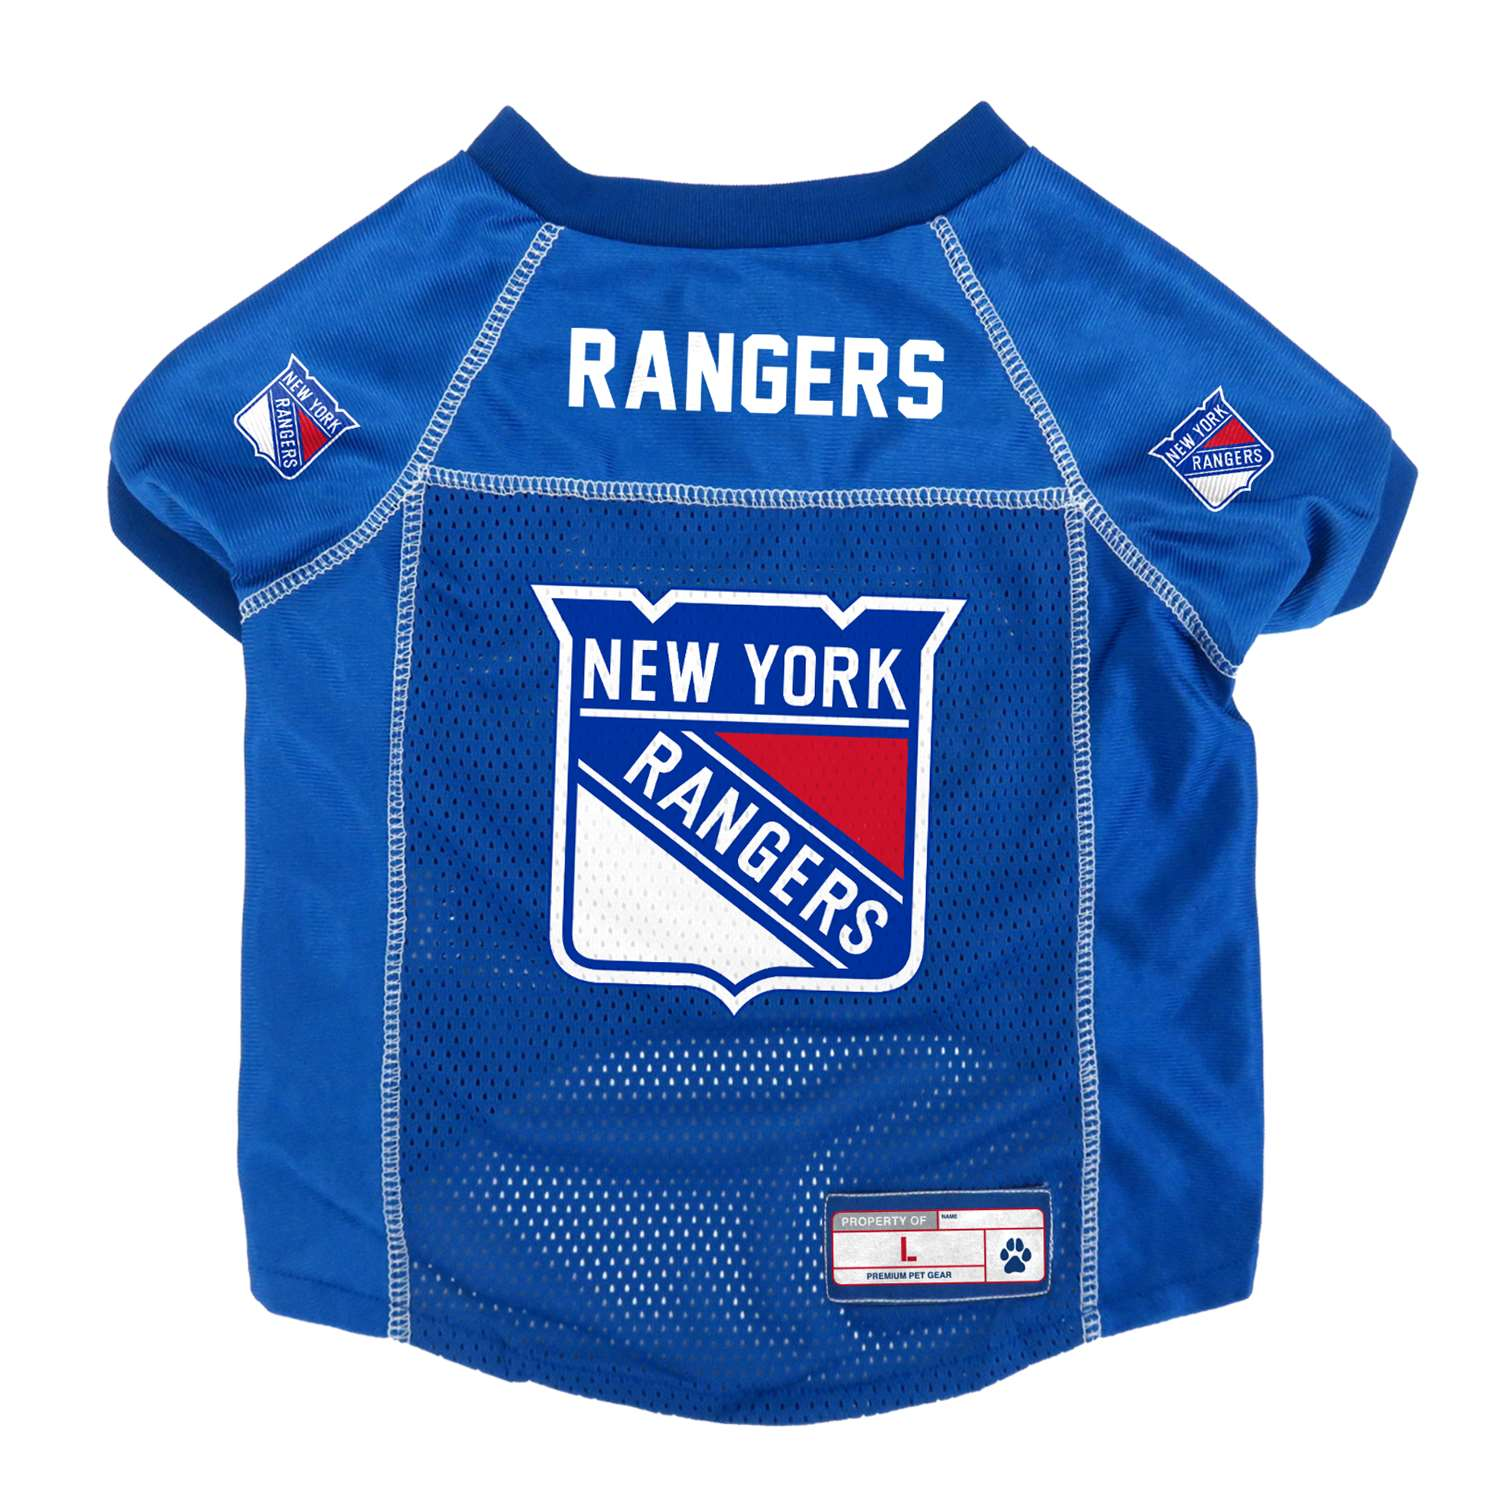 Physical Therapy Pet Care Courses & Accessories - 520134-rngr-l - New York Rangers Pet Jersey 520134-RNGR-L